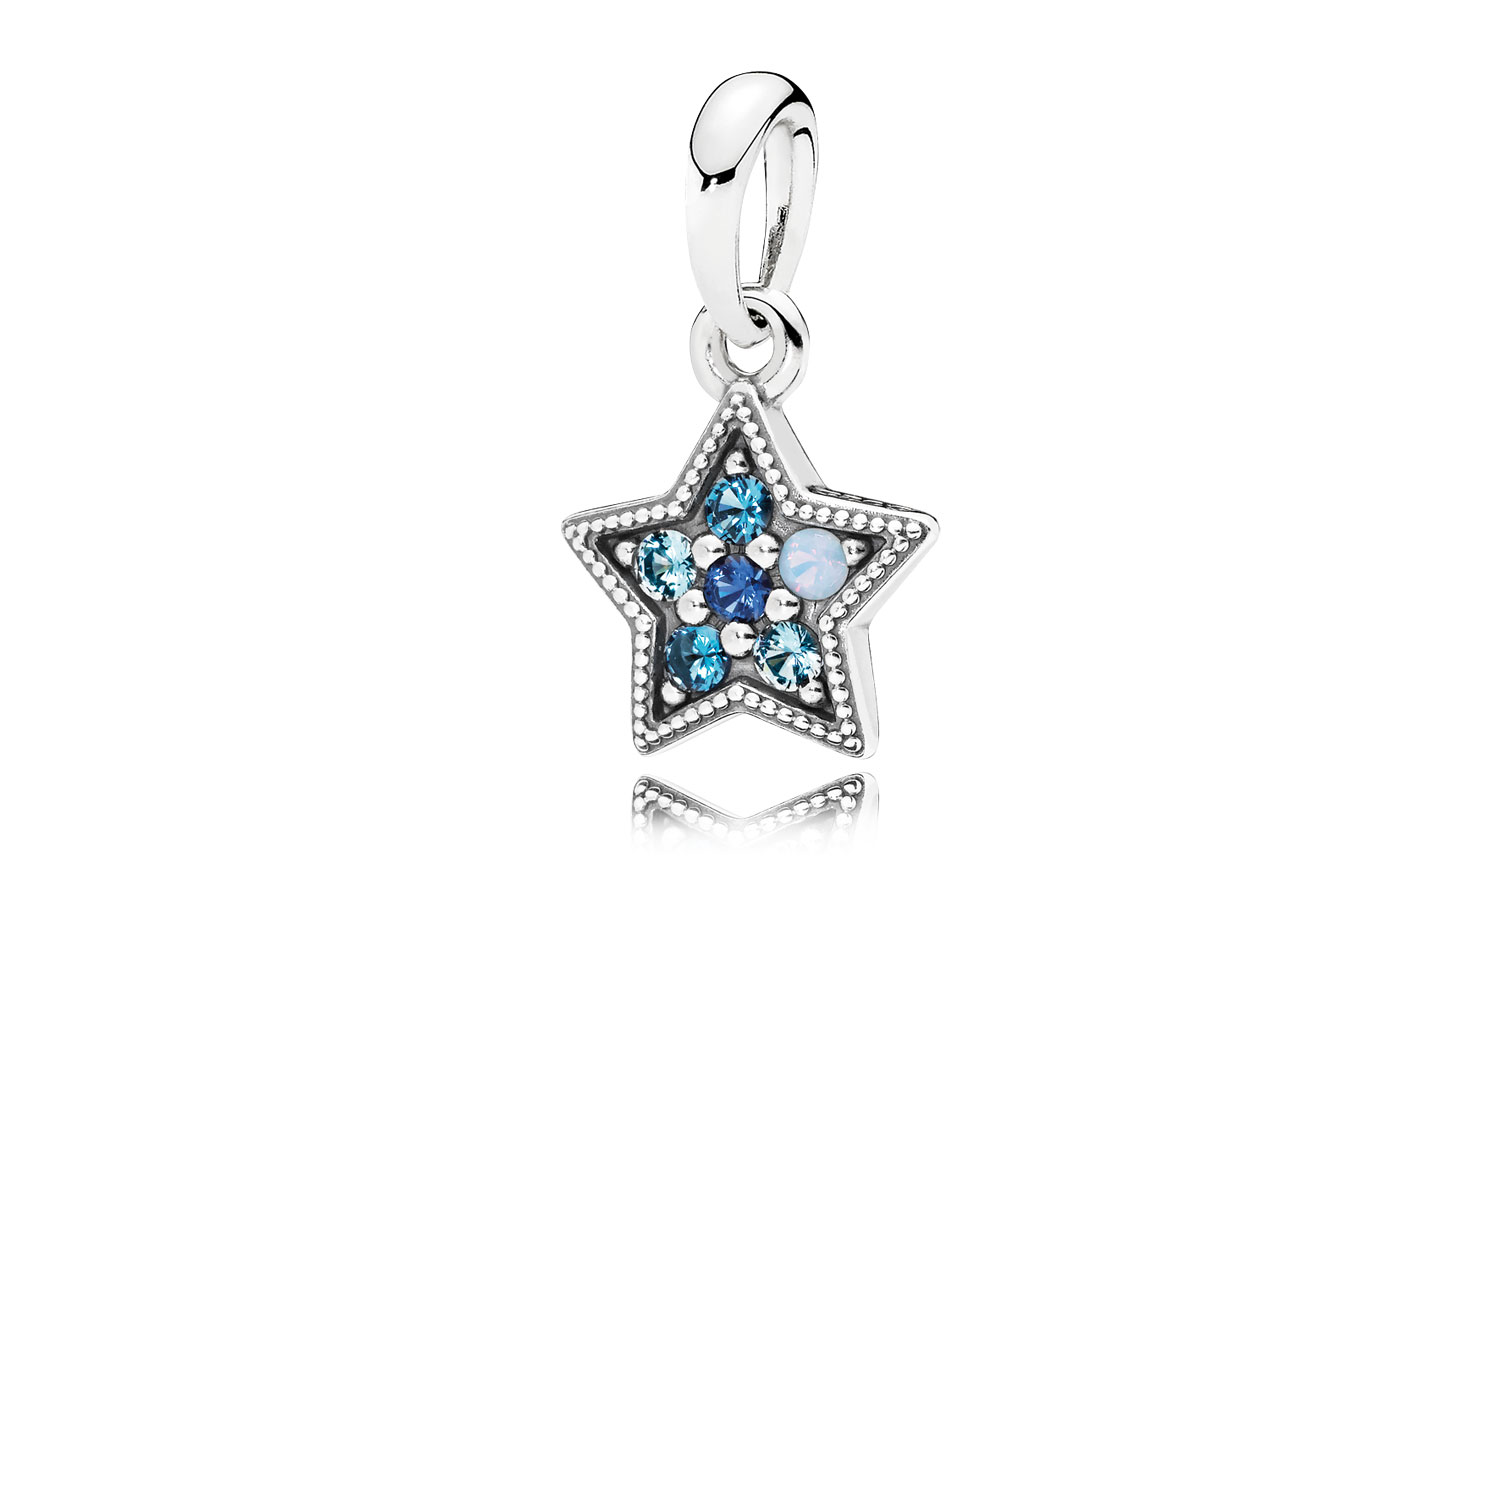 Bright Star Necklace Pendant, Multi-Colored Crystals